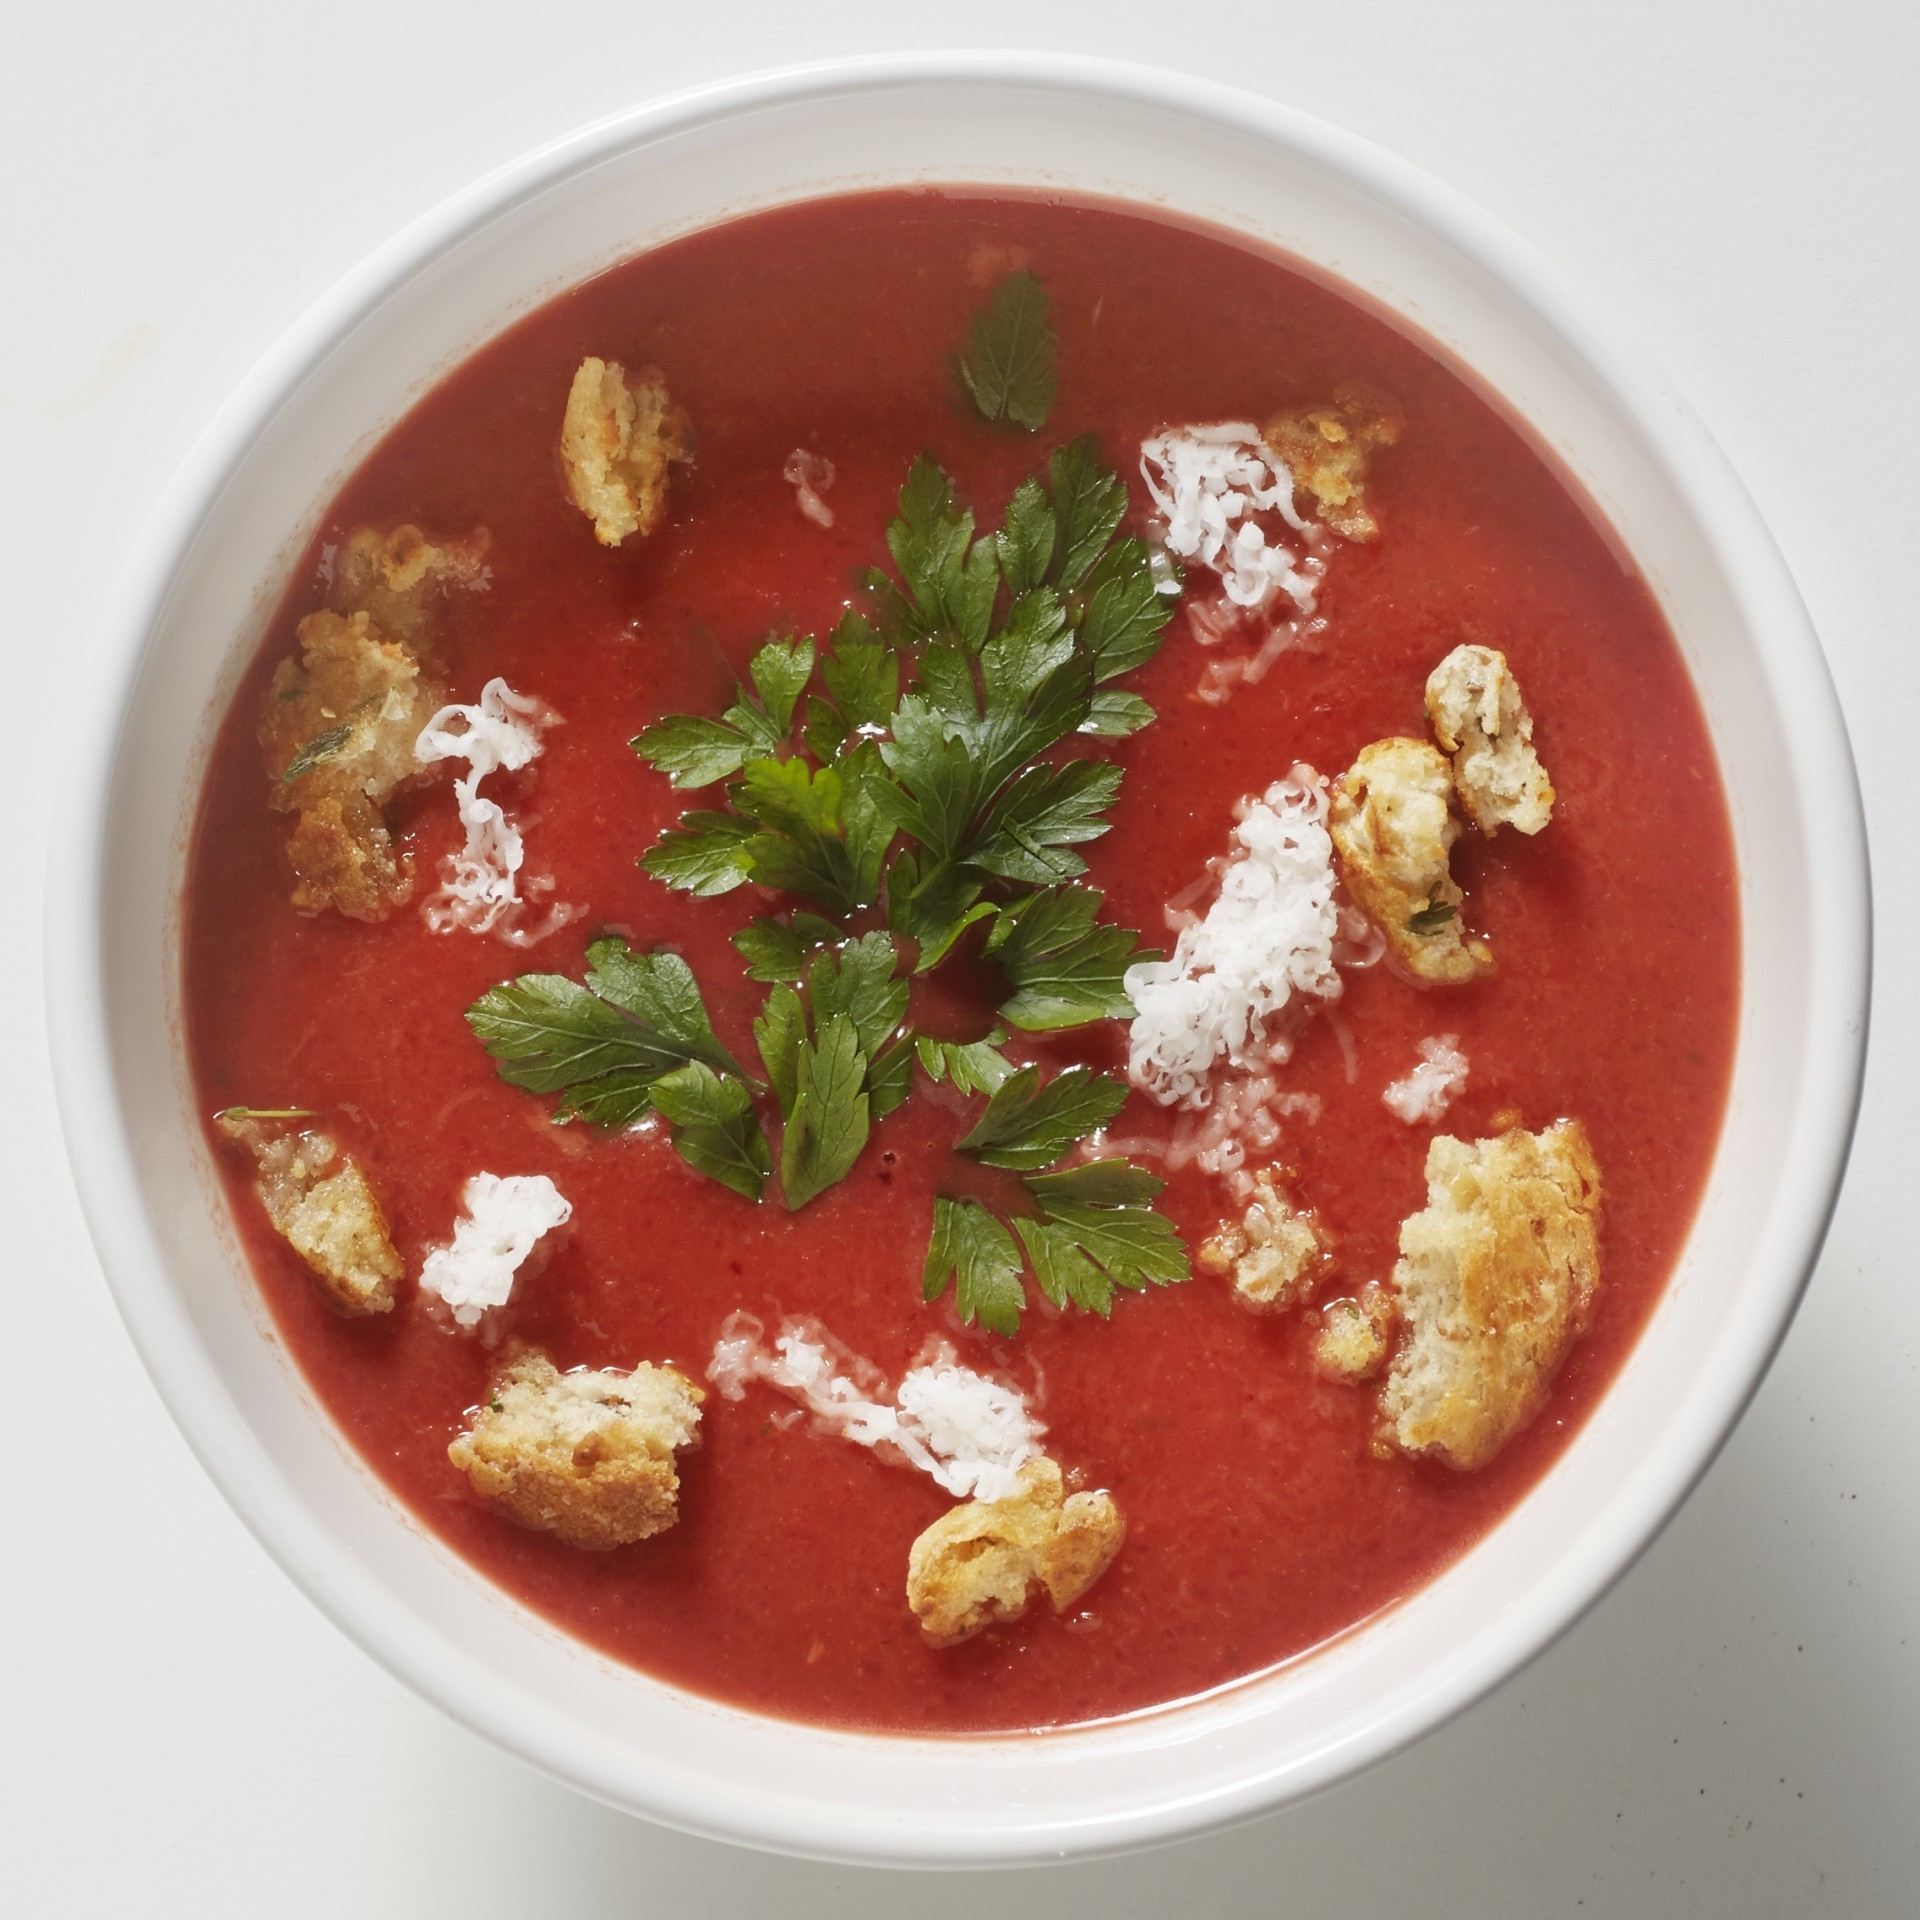 Beet soup with goat's cheese